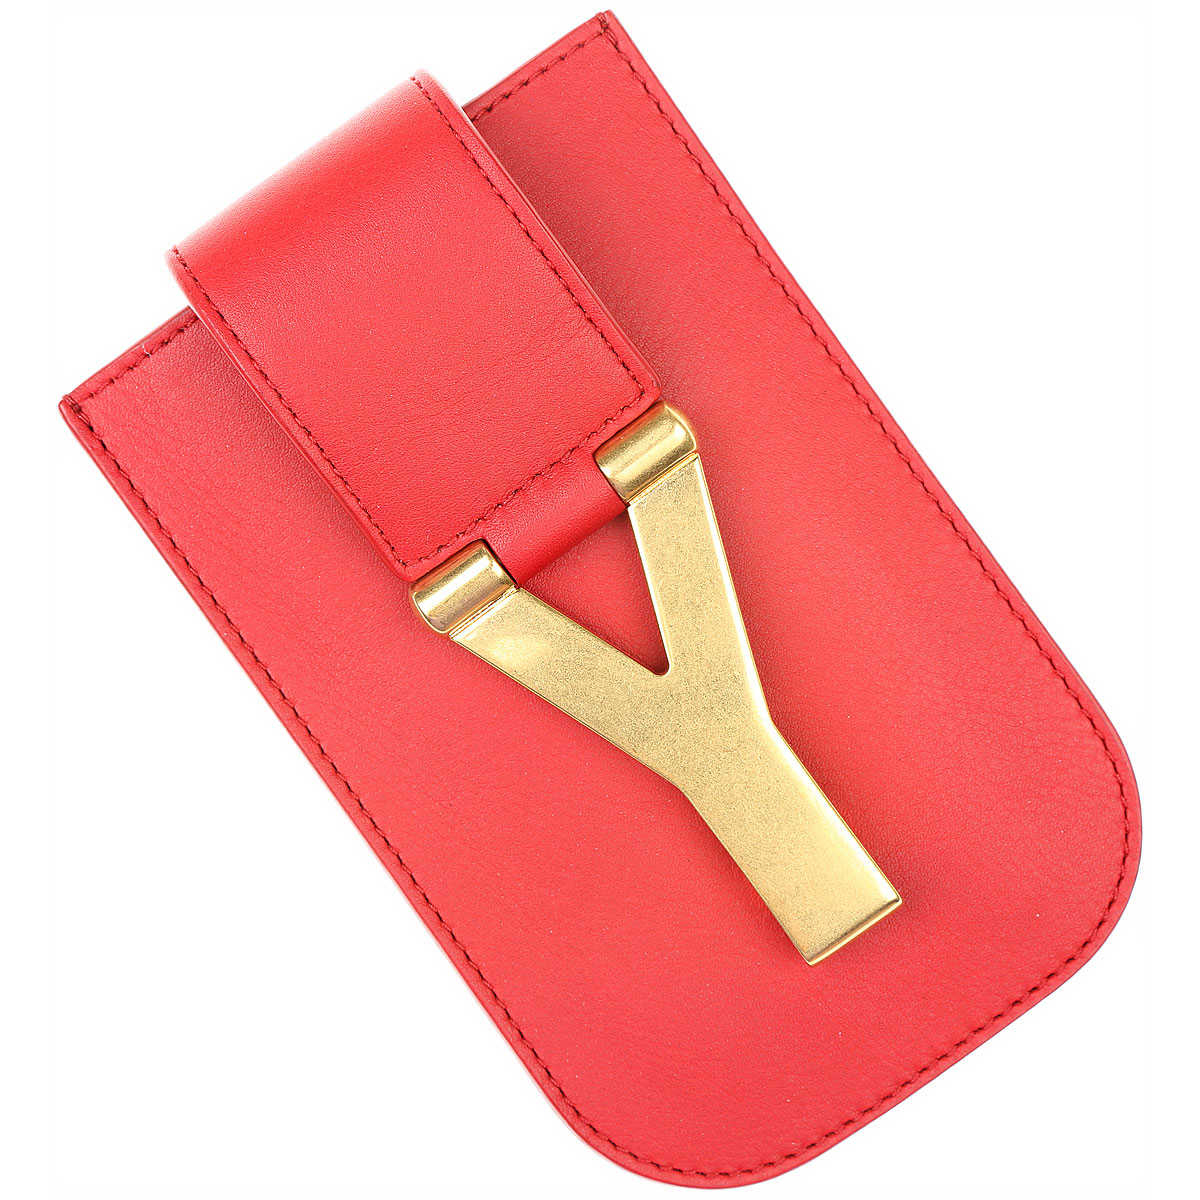 Yves Saint Laurent Womens Wallets On Sale in Outlet